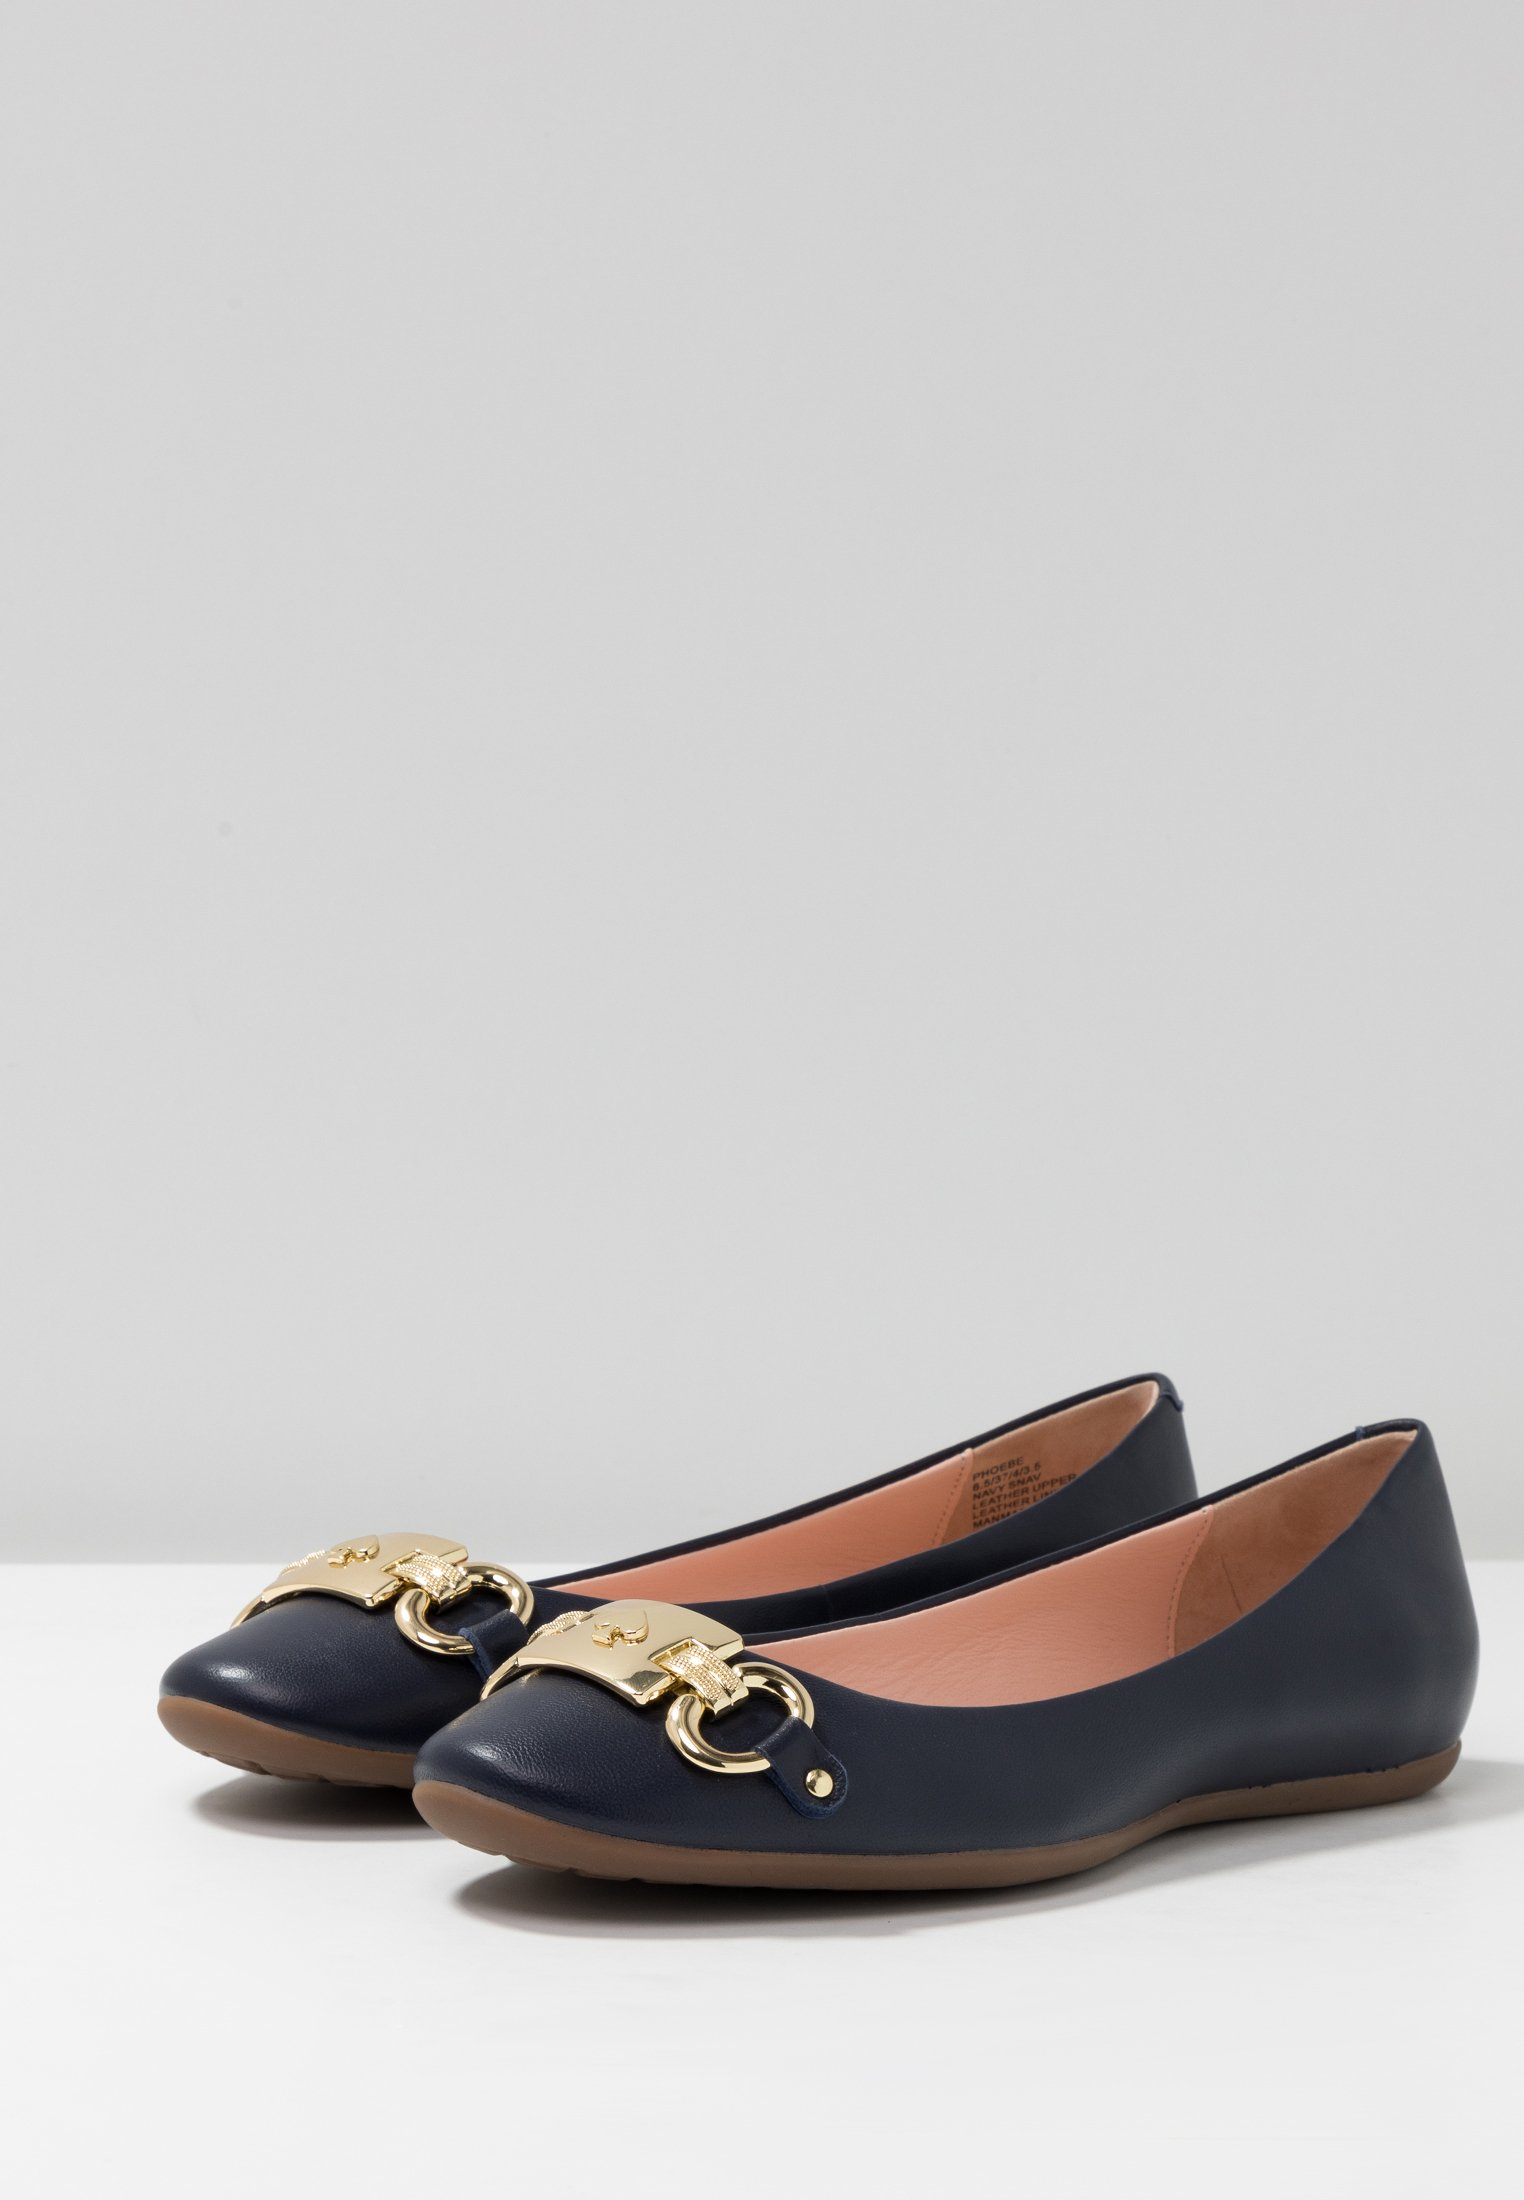 PHOEBEBallerines new york navy spade kate yIY6gv7bf